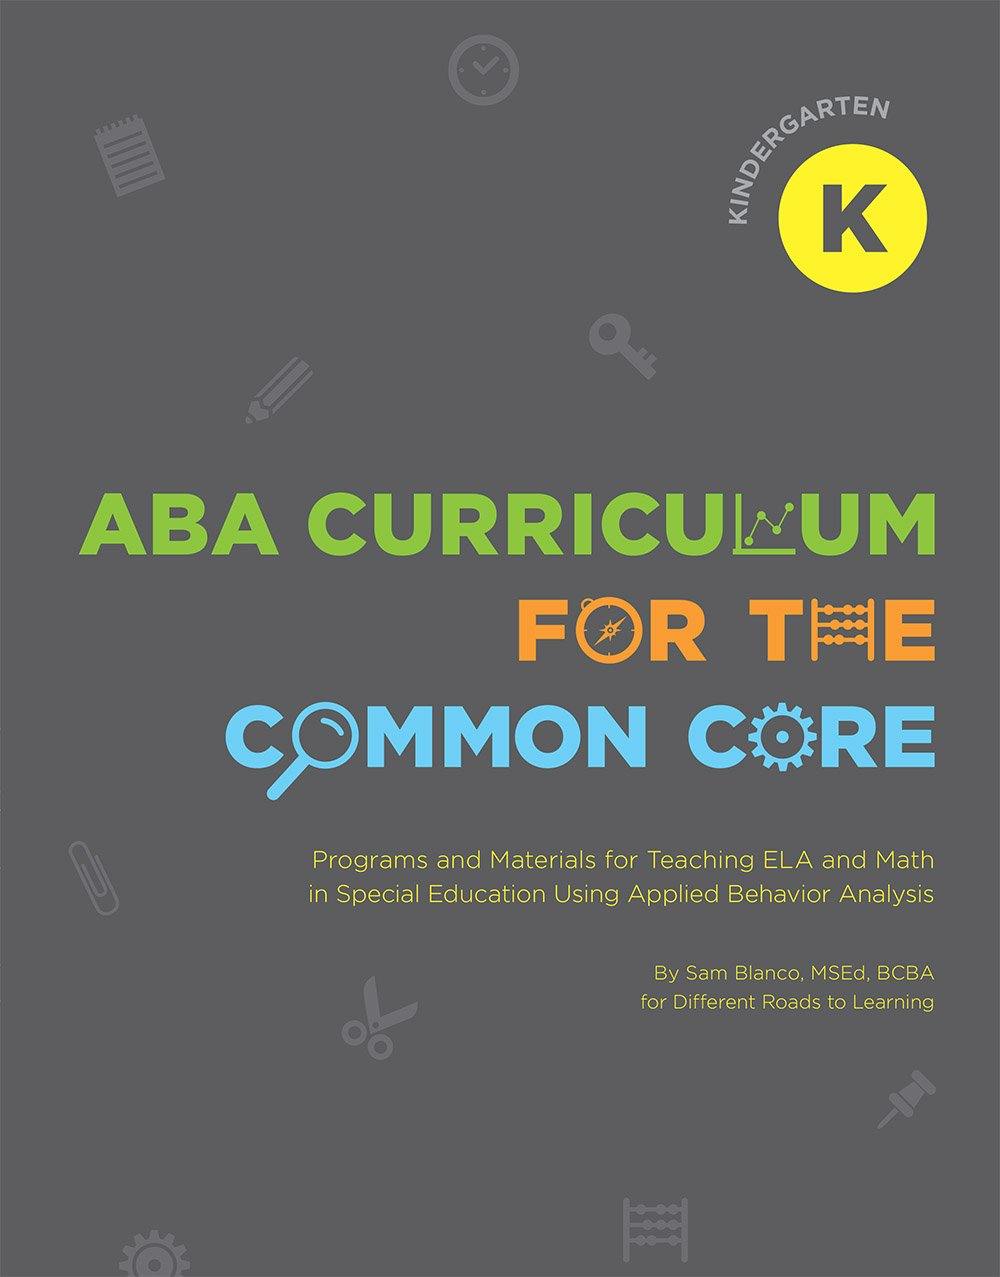 photo about Vb Mapp Printable Materials named ABA Curriculum for the Popular Main: Kindergarten: Sam Blanco